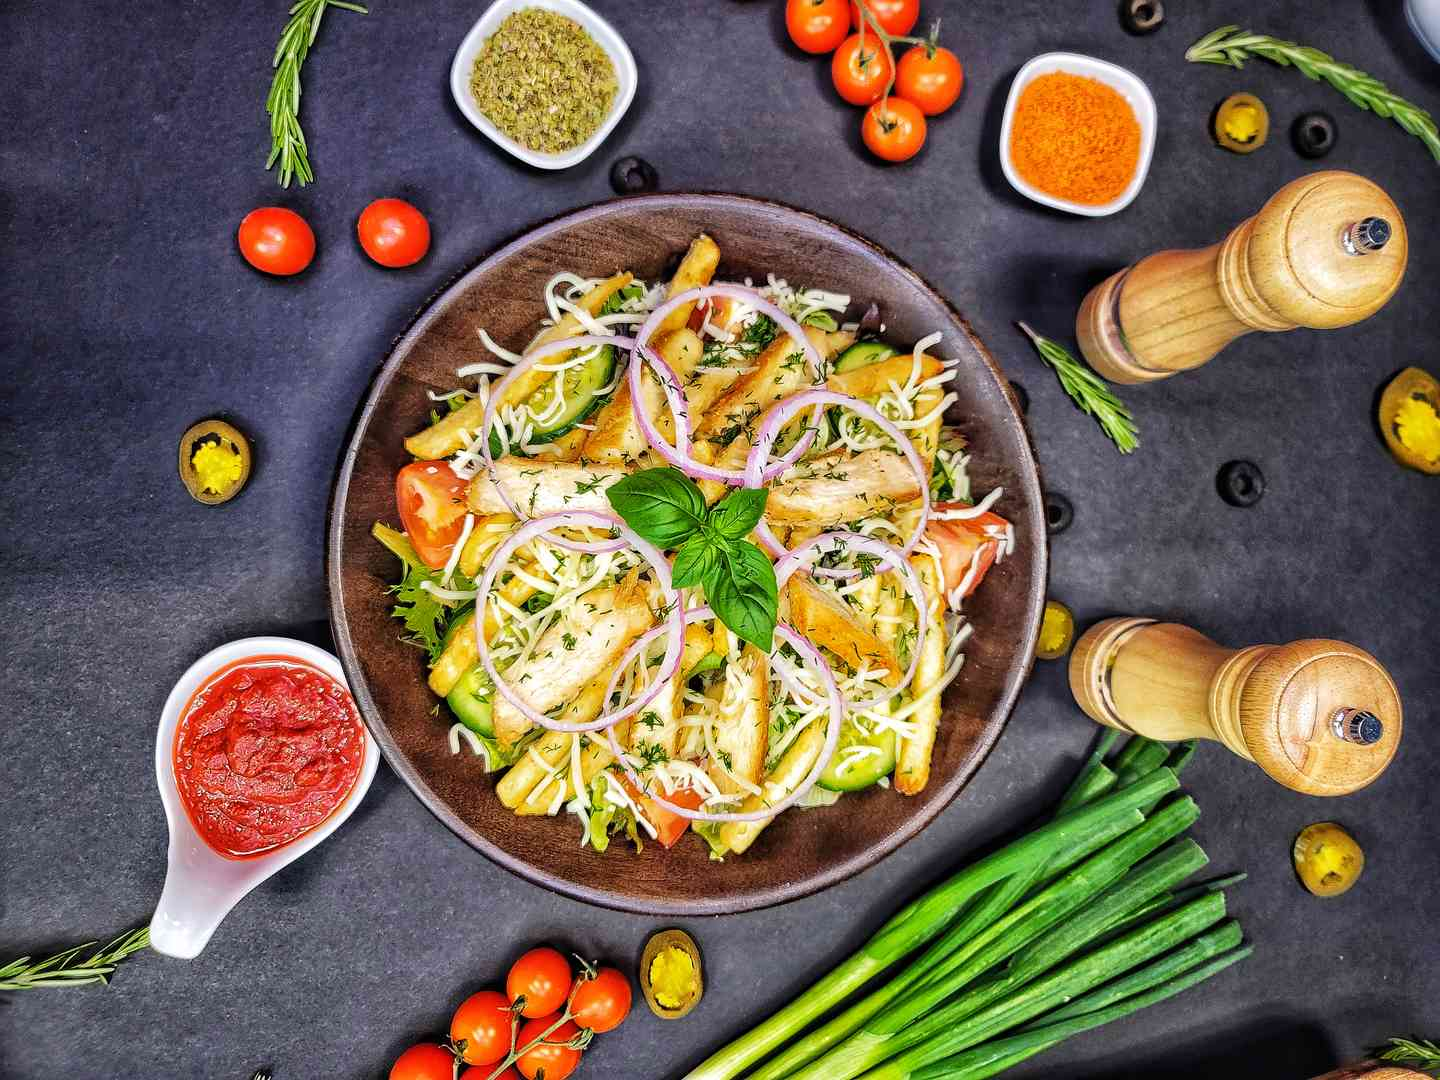 Chicken Salad (Catering)